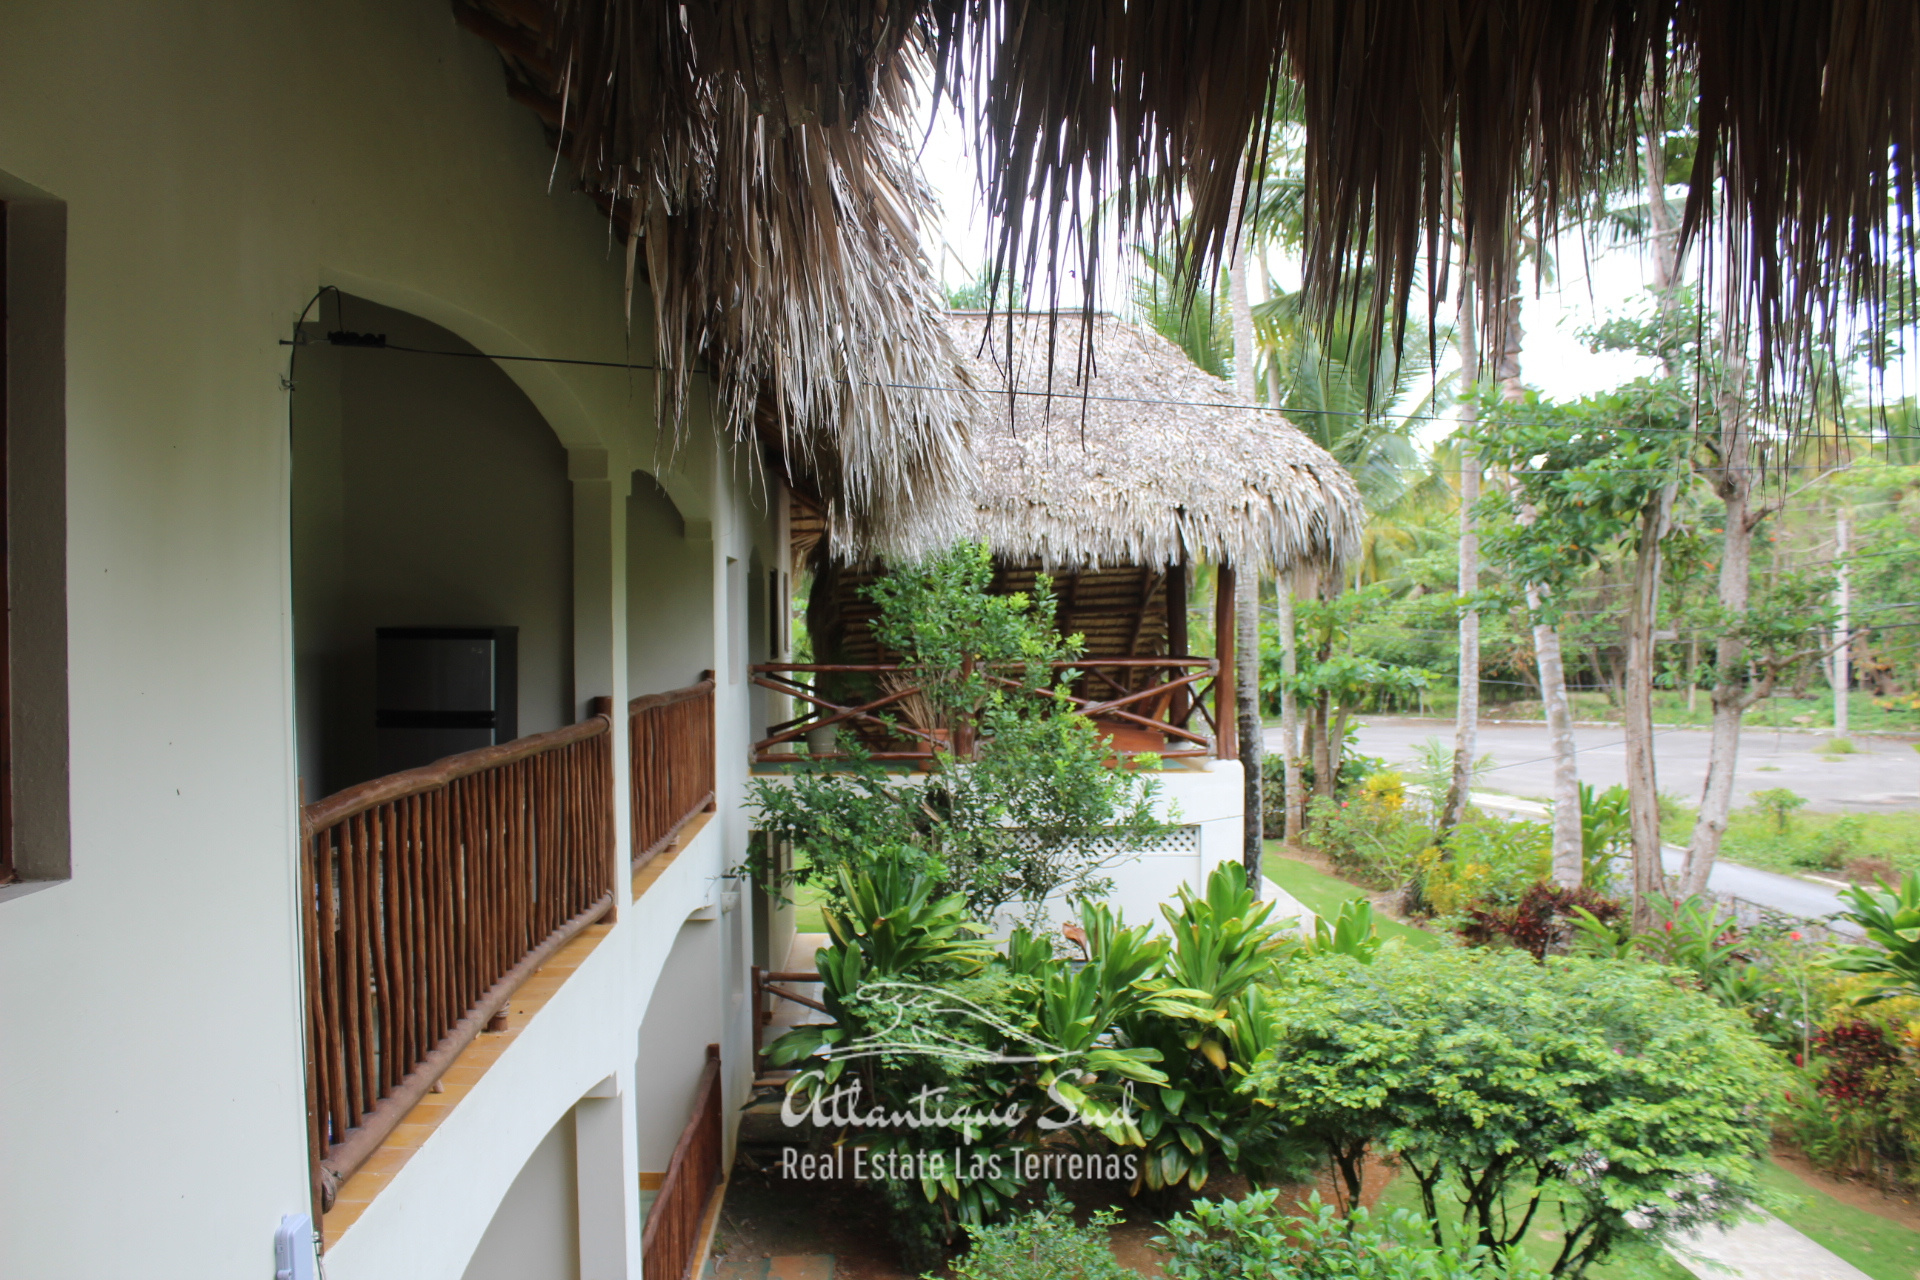 For-sale-Apartment-in-beachfront-community-with-mezzanine-Las-Terrenas_4786 (1).JPG